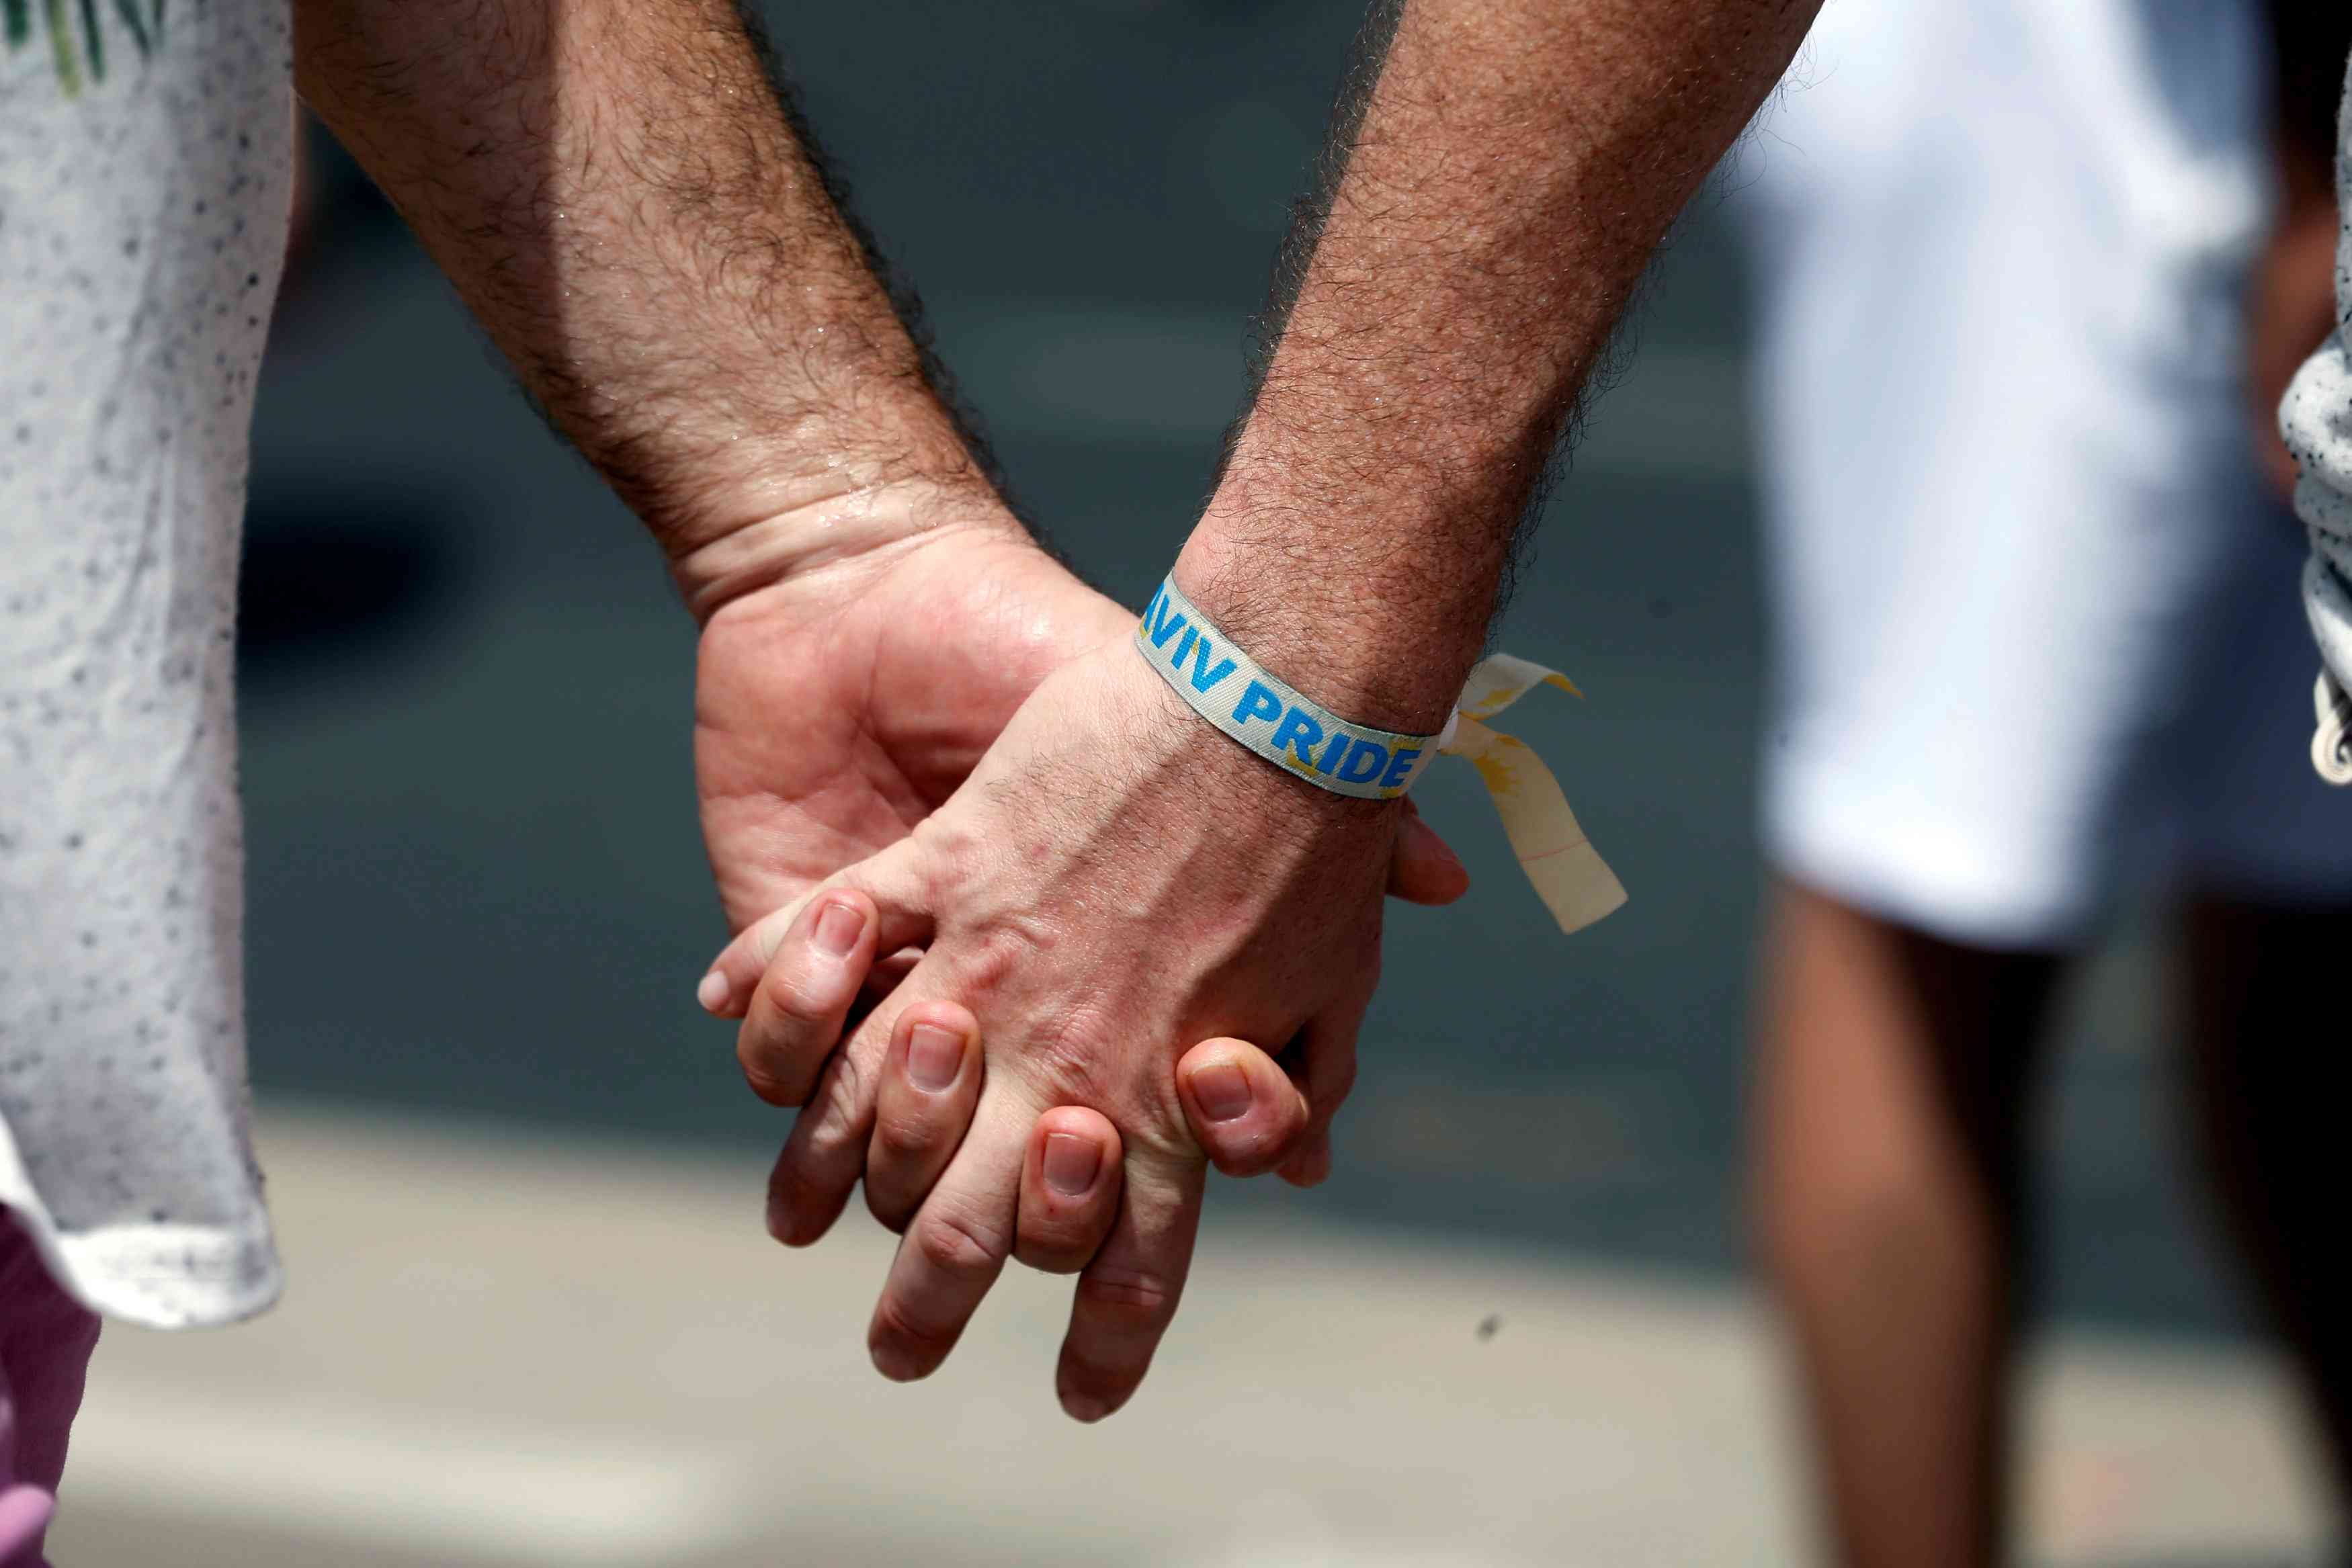 Two man hold hands as they take part in a gay pride parade in Tel Aviv, Israel, June 3, 2016. REUTERS/Baz Ratner